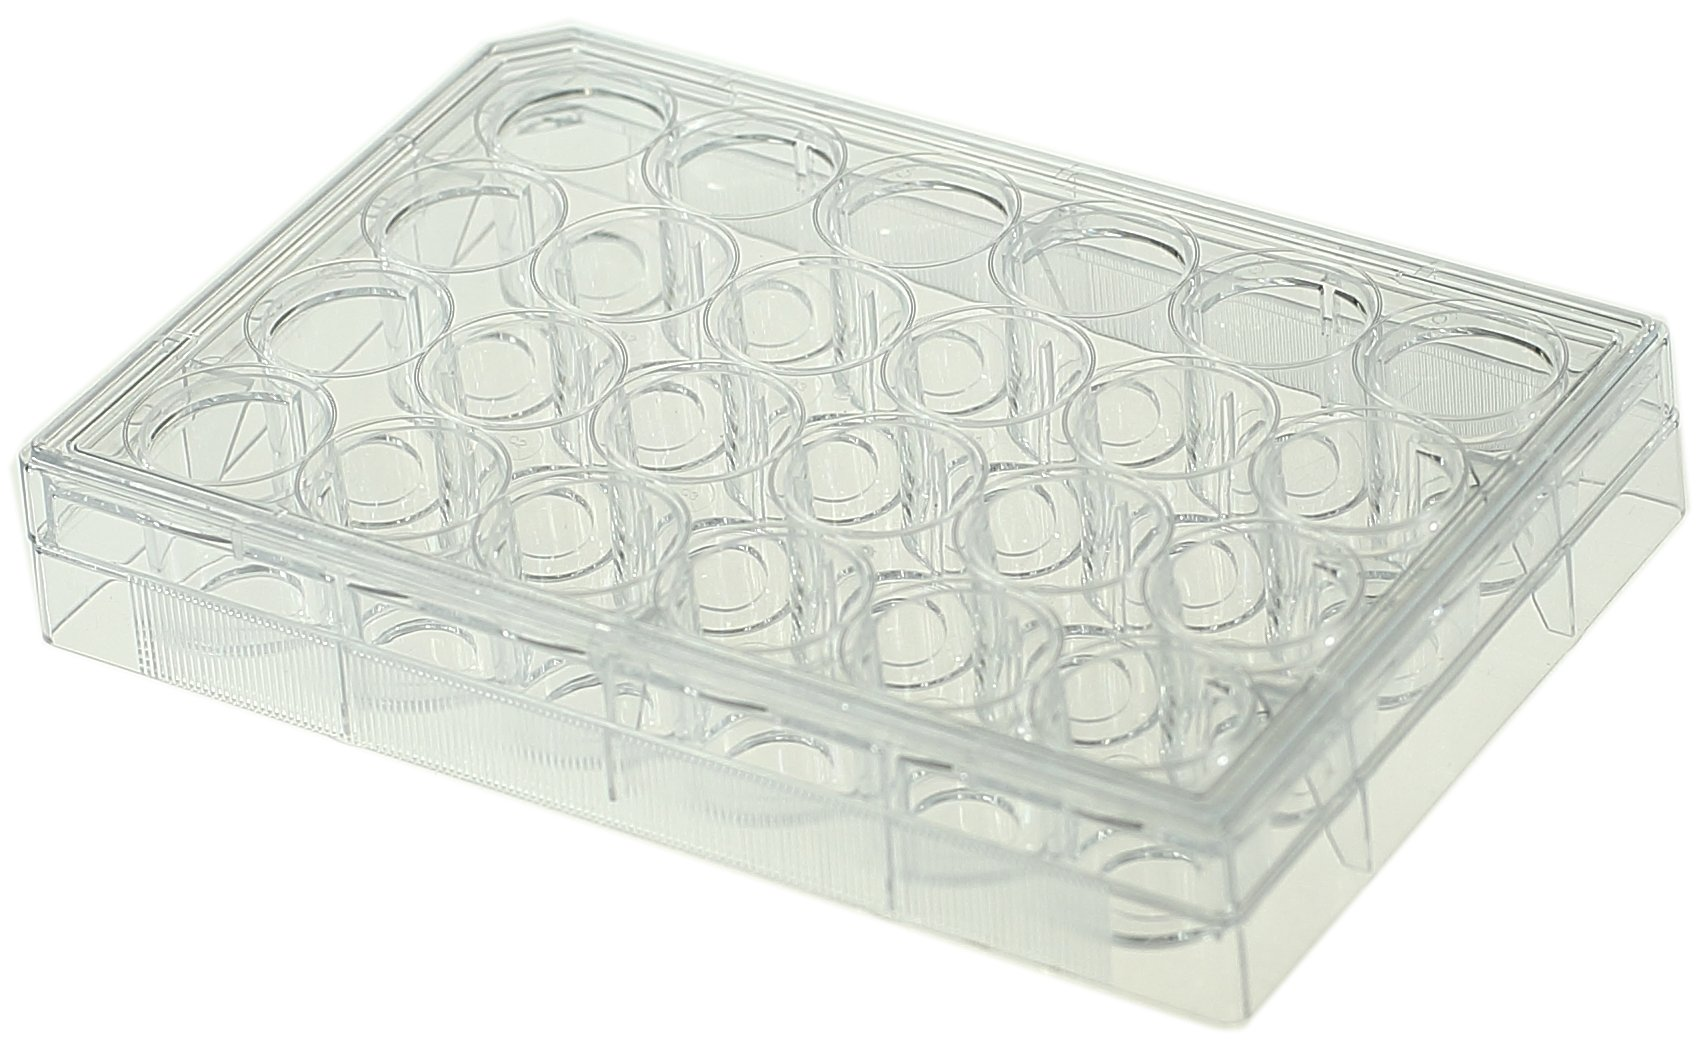 Nest Scientific 801006 Polystyrene/Glass 24 Well Glass Bottom Cell Culture Plate, 10 mm Diameter, Tissue Culture Treated, Sterile, Clear, 1 per Pack, 10 per Case (Pack of 10)